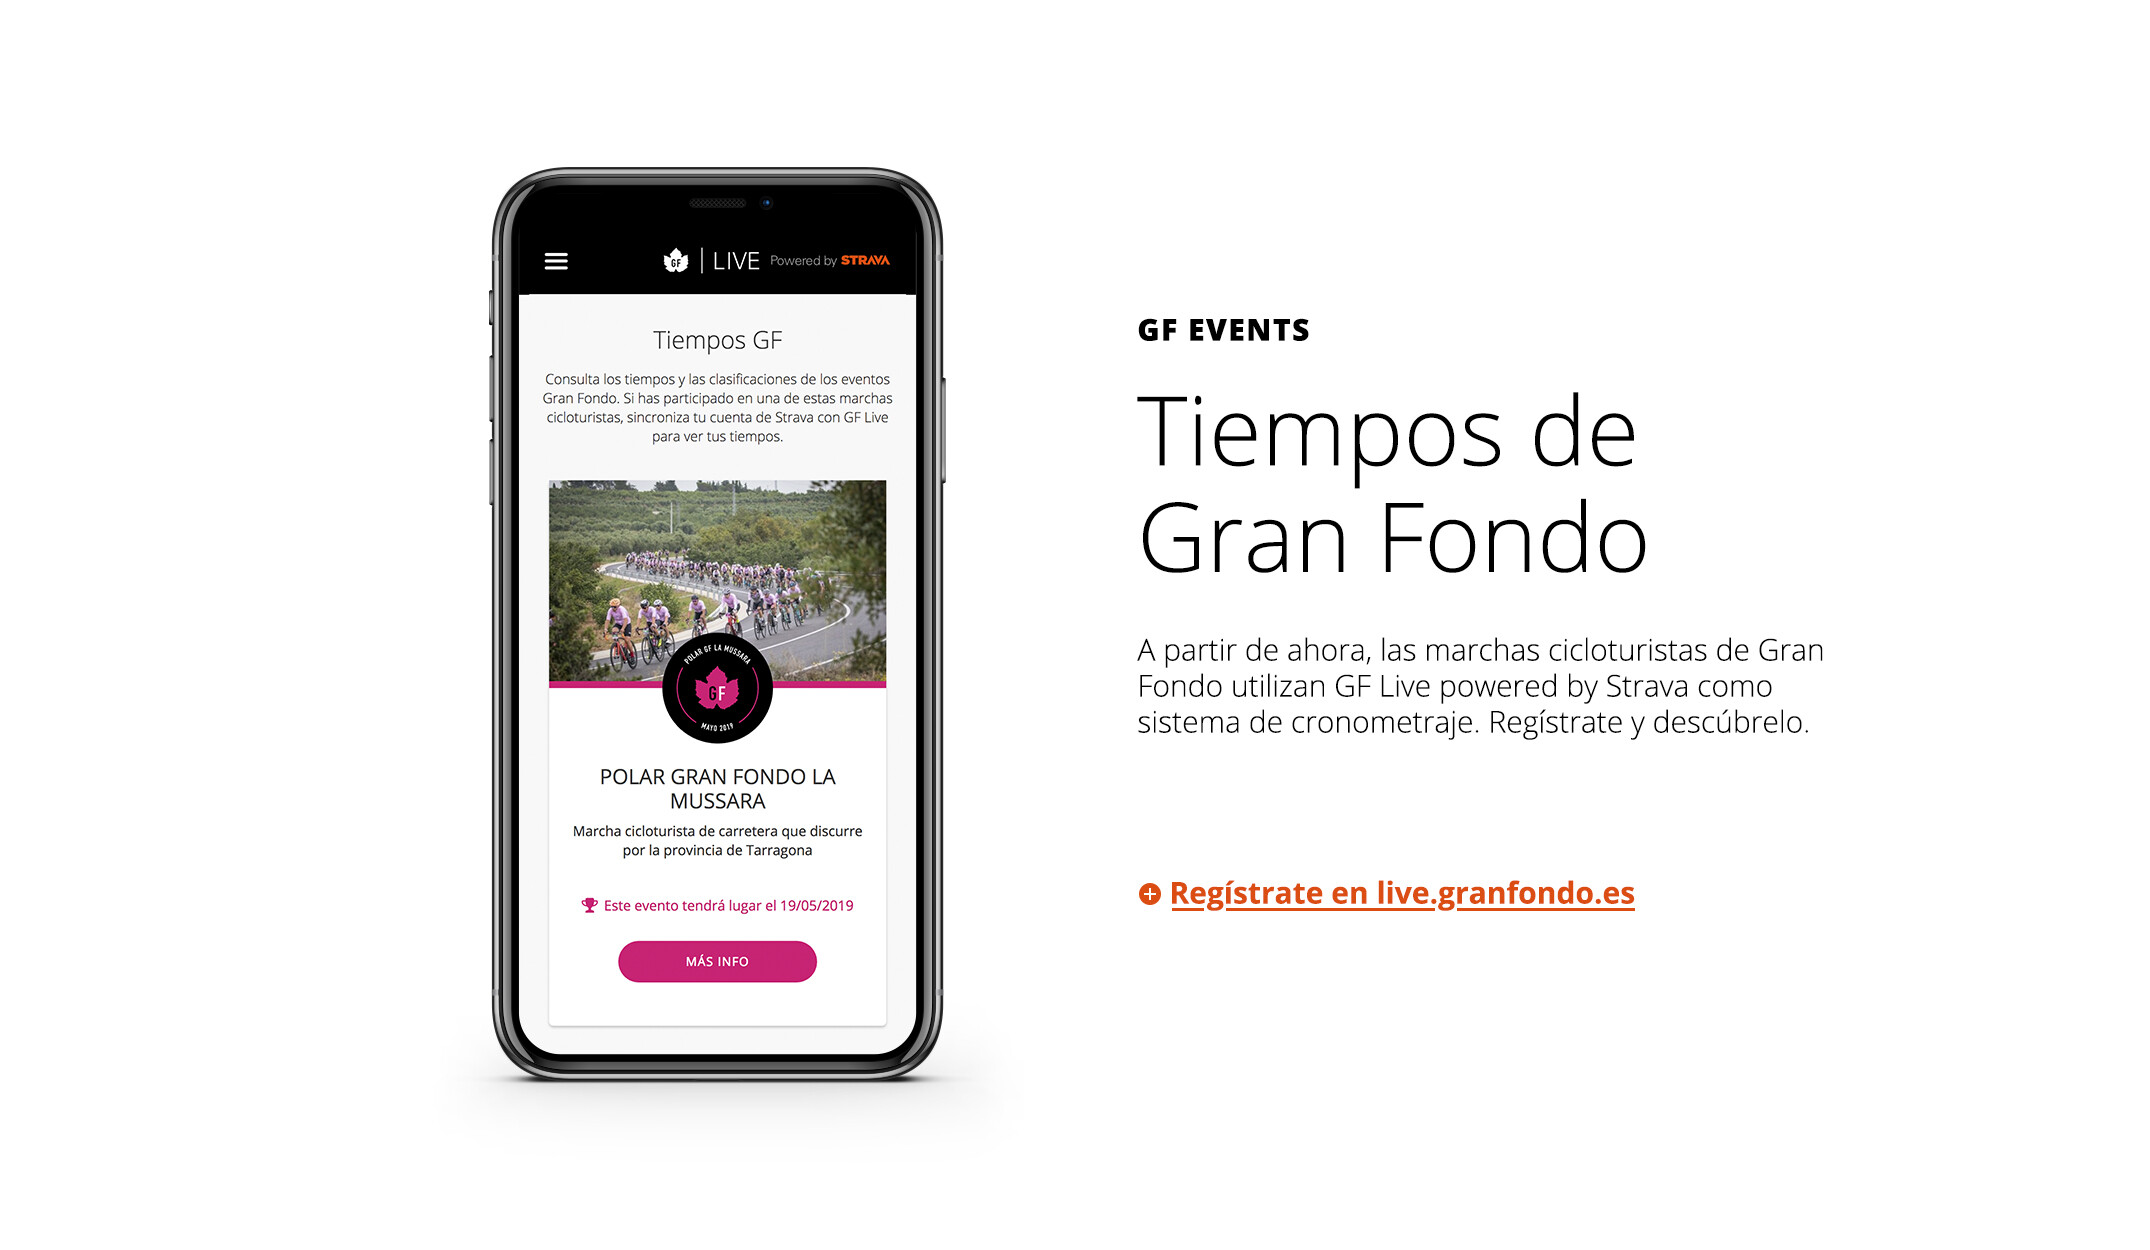 gflive_press_05 Nace la plataforma digital GF Live powered by STRAVA Noticias ciclismo